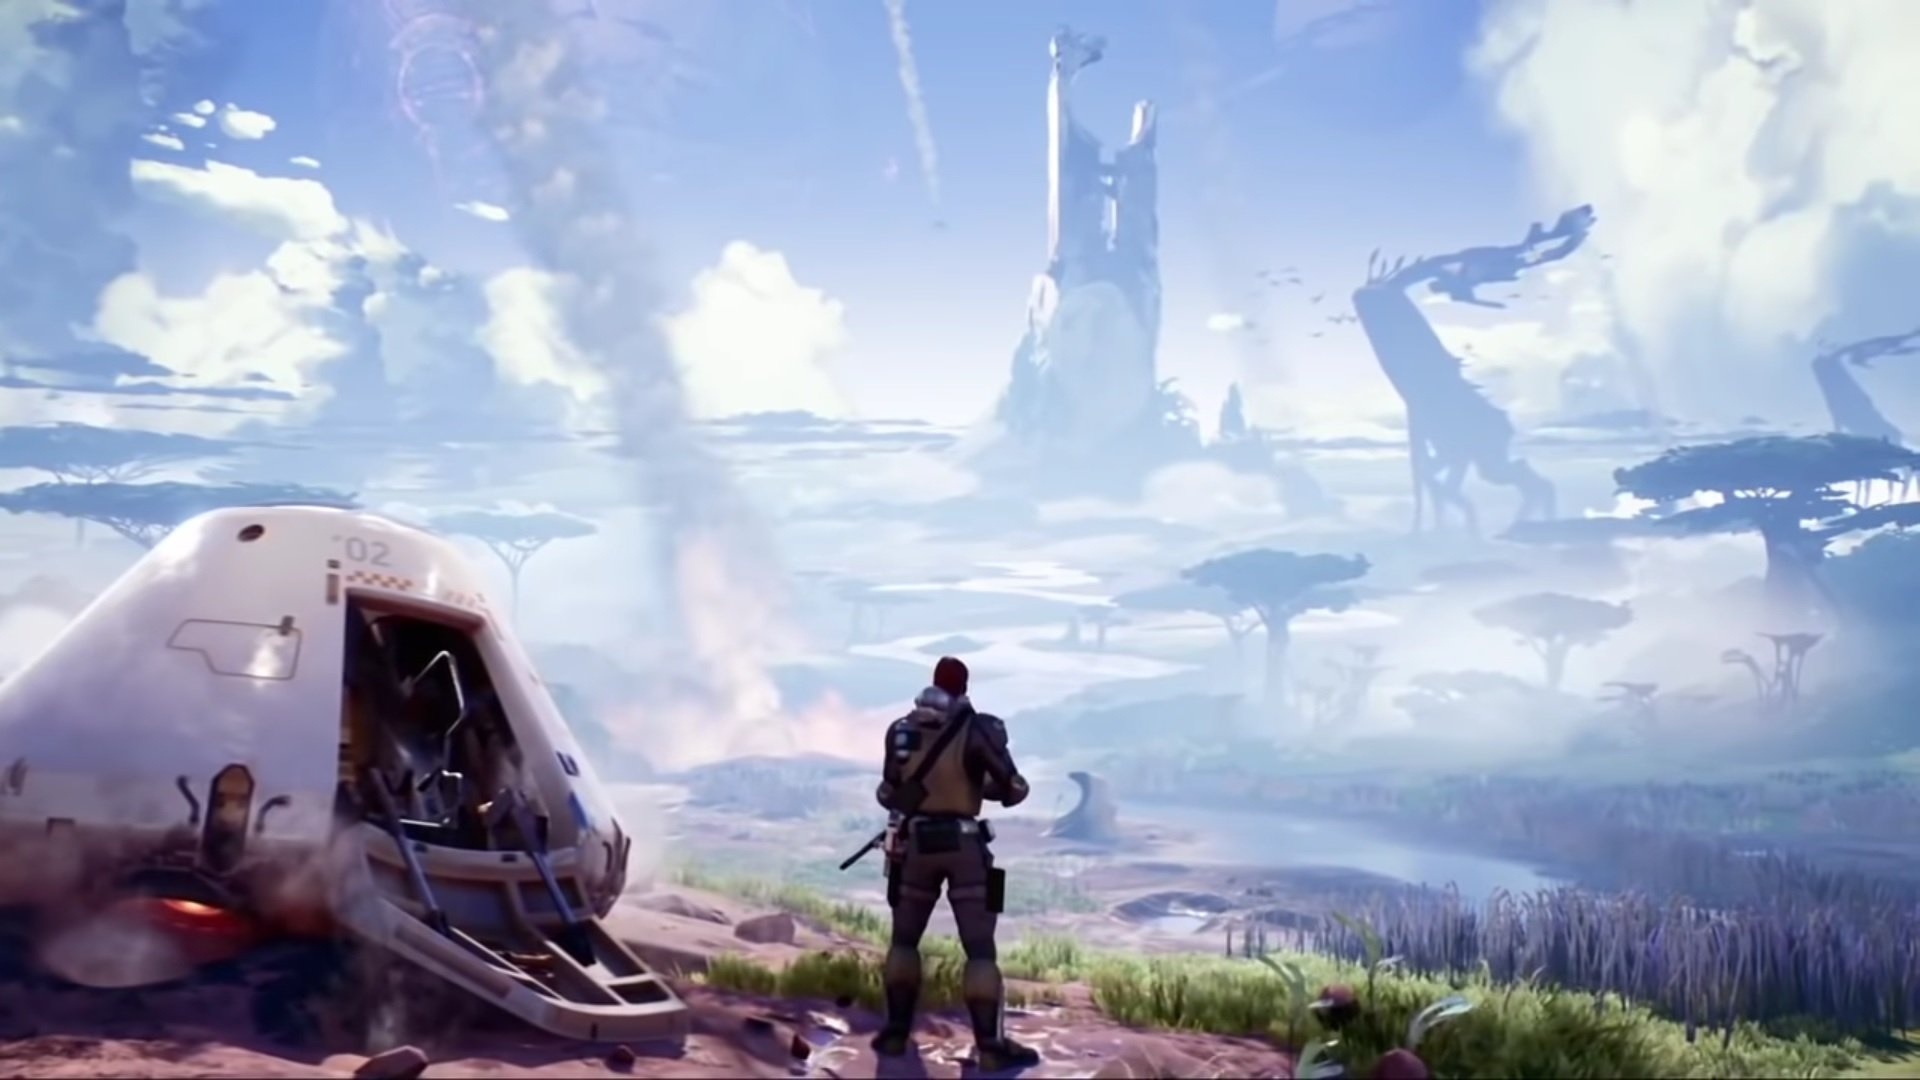 Spec Ops developer Yager announces new multiplayer shooter The Cycle